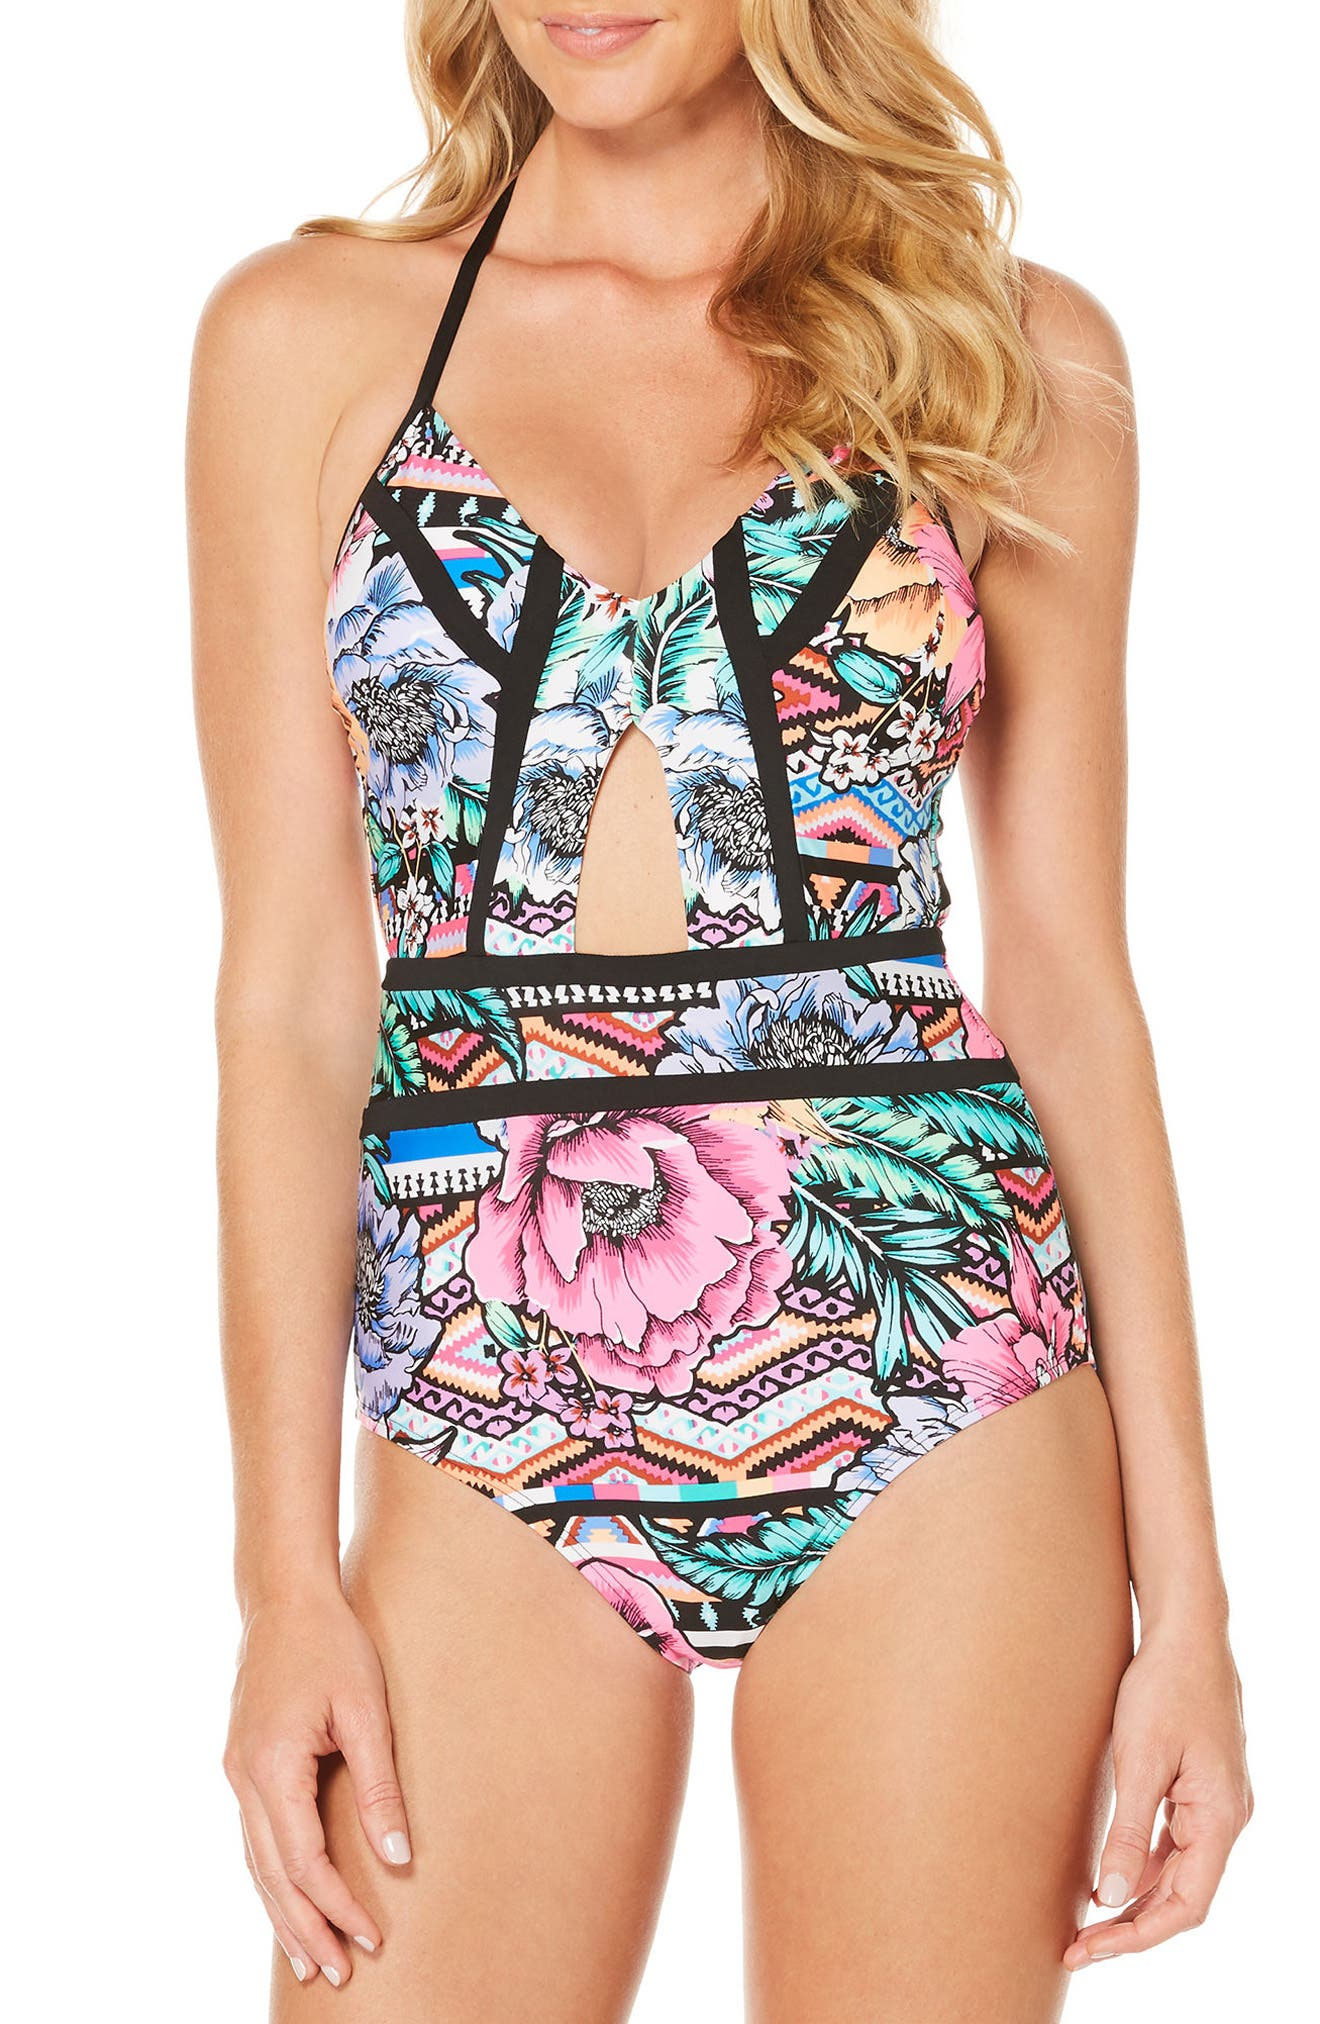 Main Image - Laundry by Shelli Segal Laguna Flora One-Piece Swimsuit